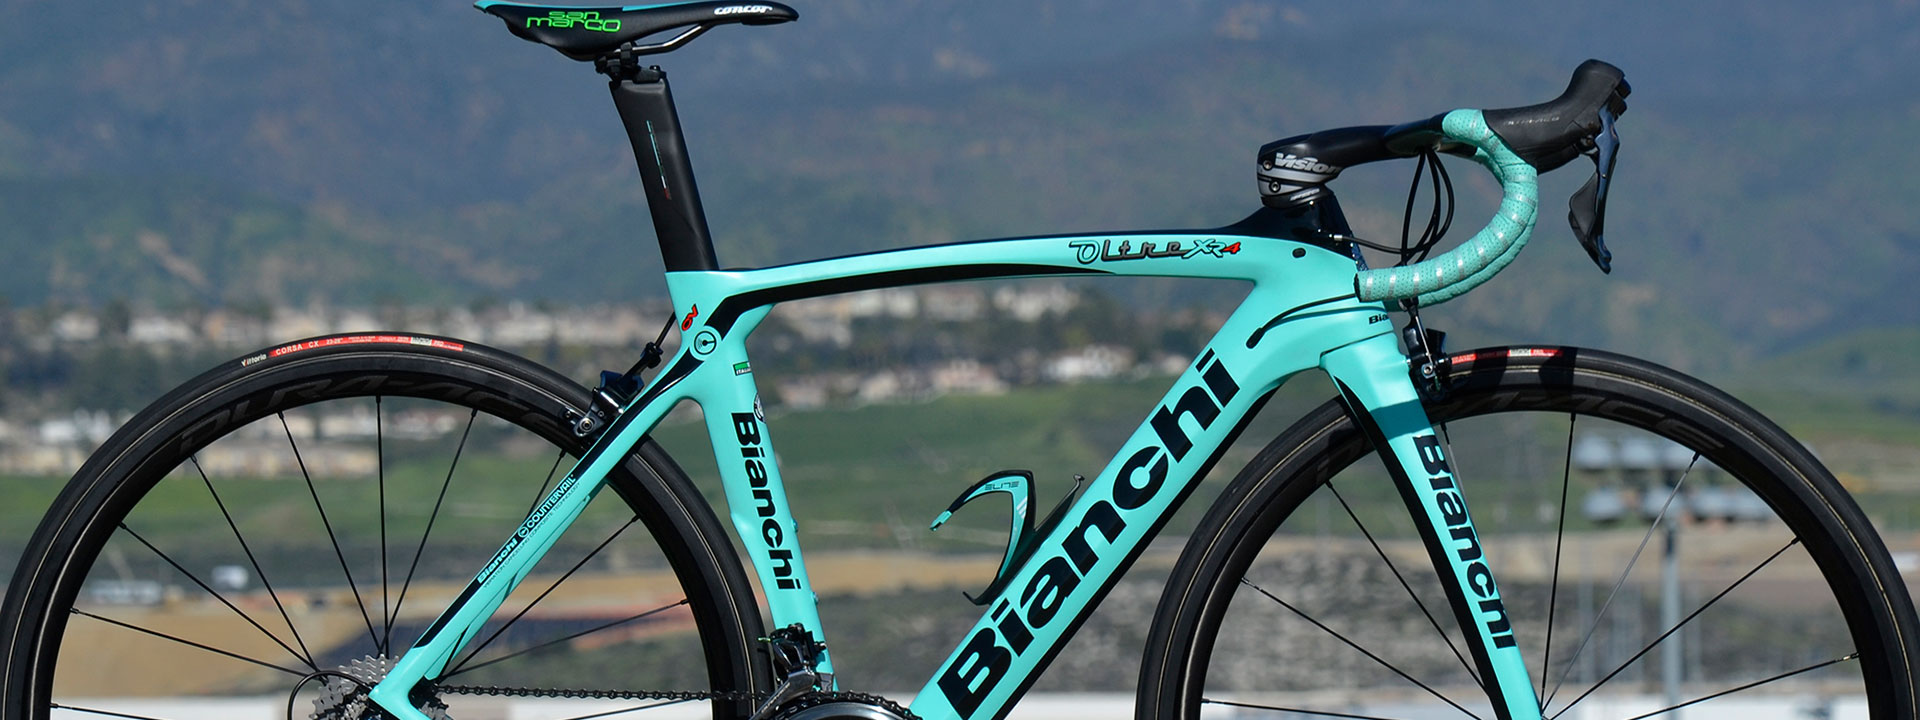 Bianchi Oltre XR4 Shimano Dura Ace R9100 C40 Complete Bike